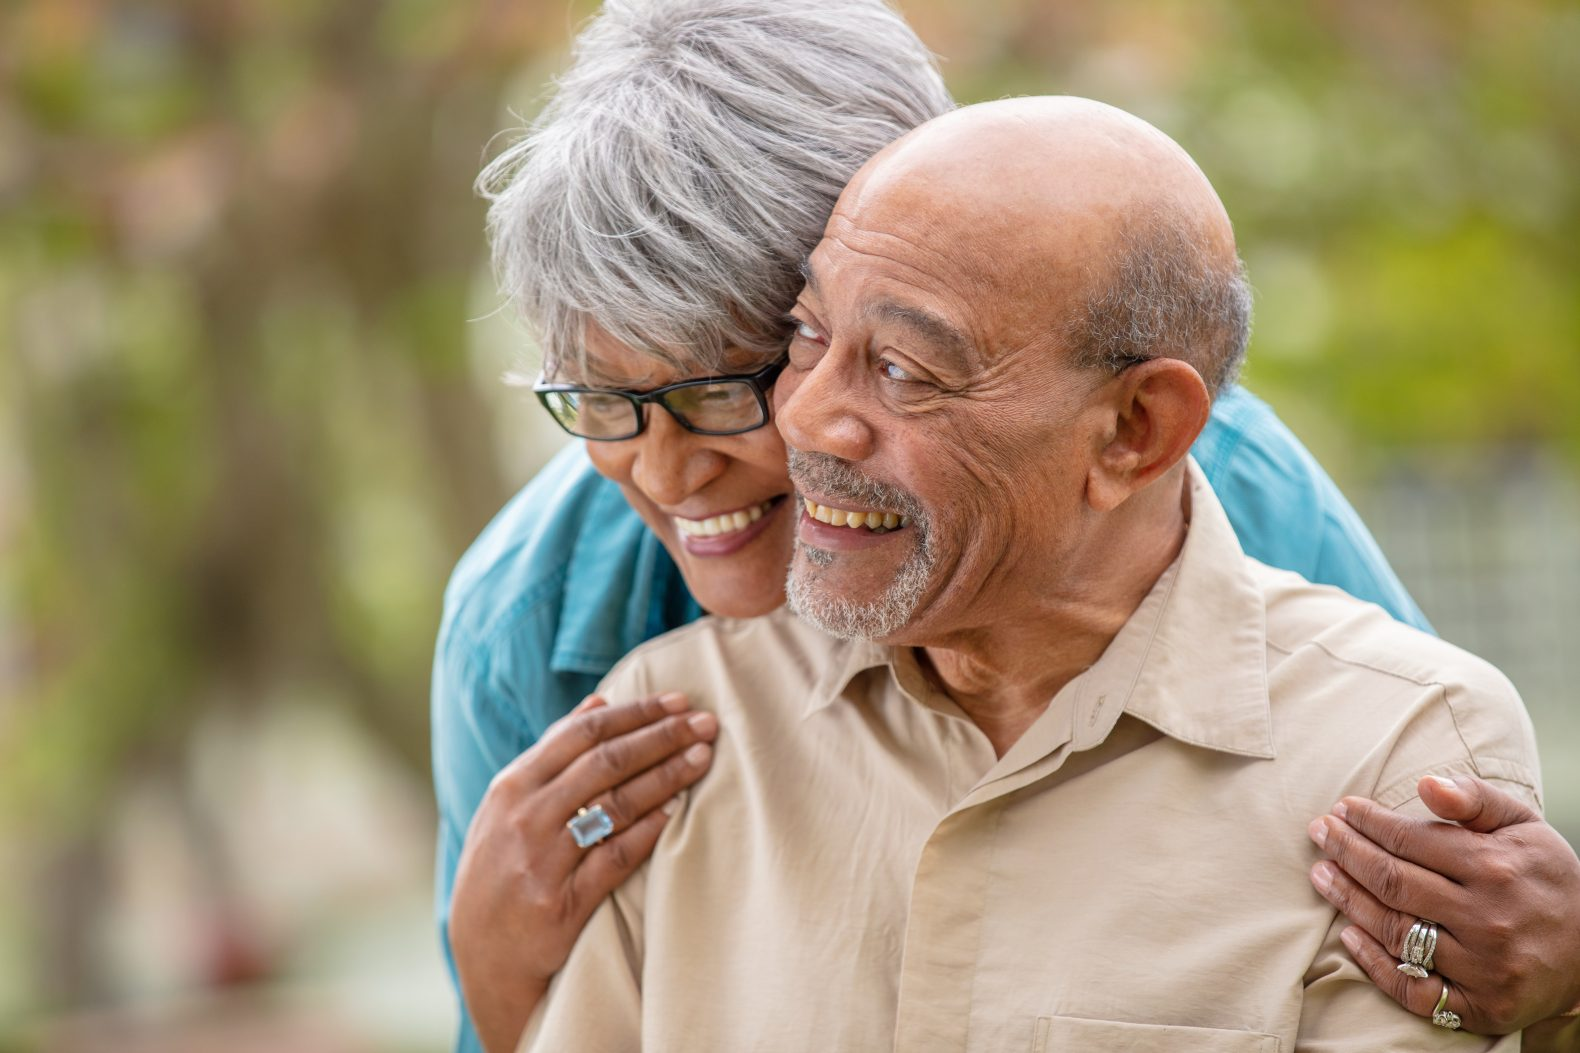 Professional production photograph of an older couple embracing with green foliage in the background